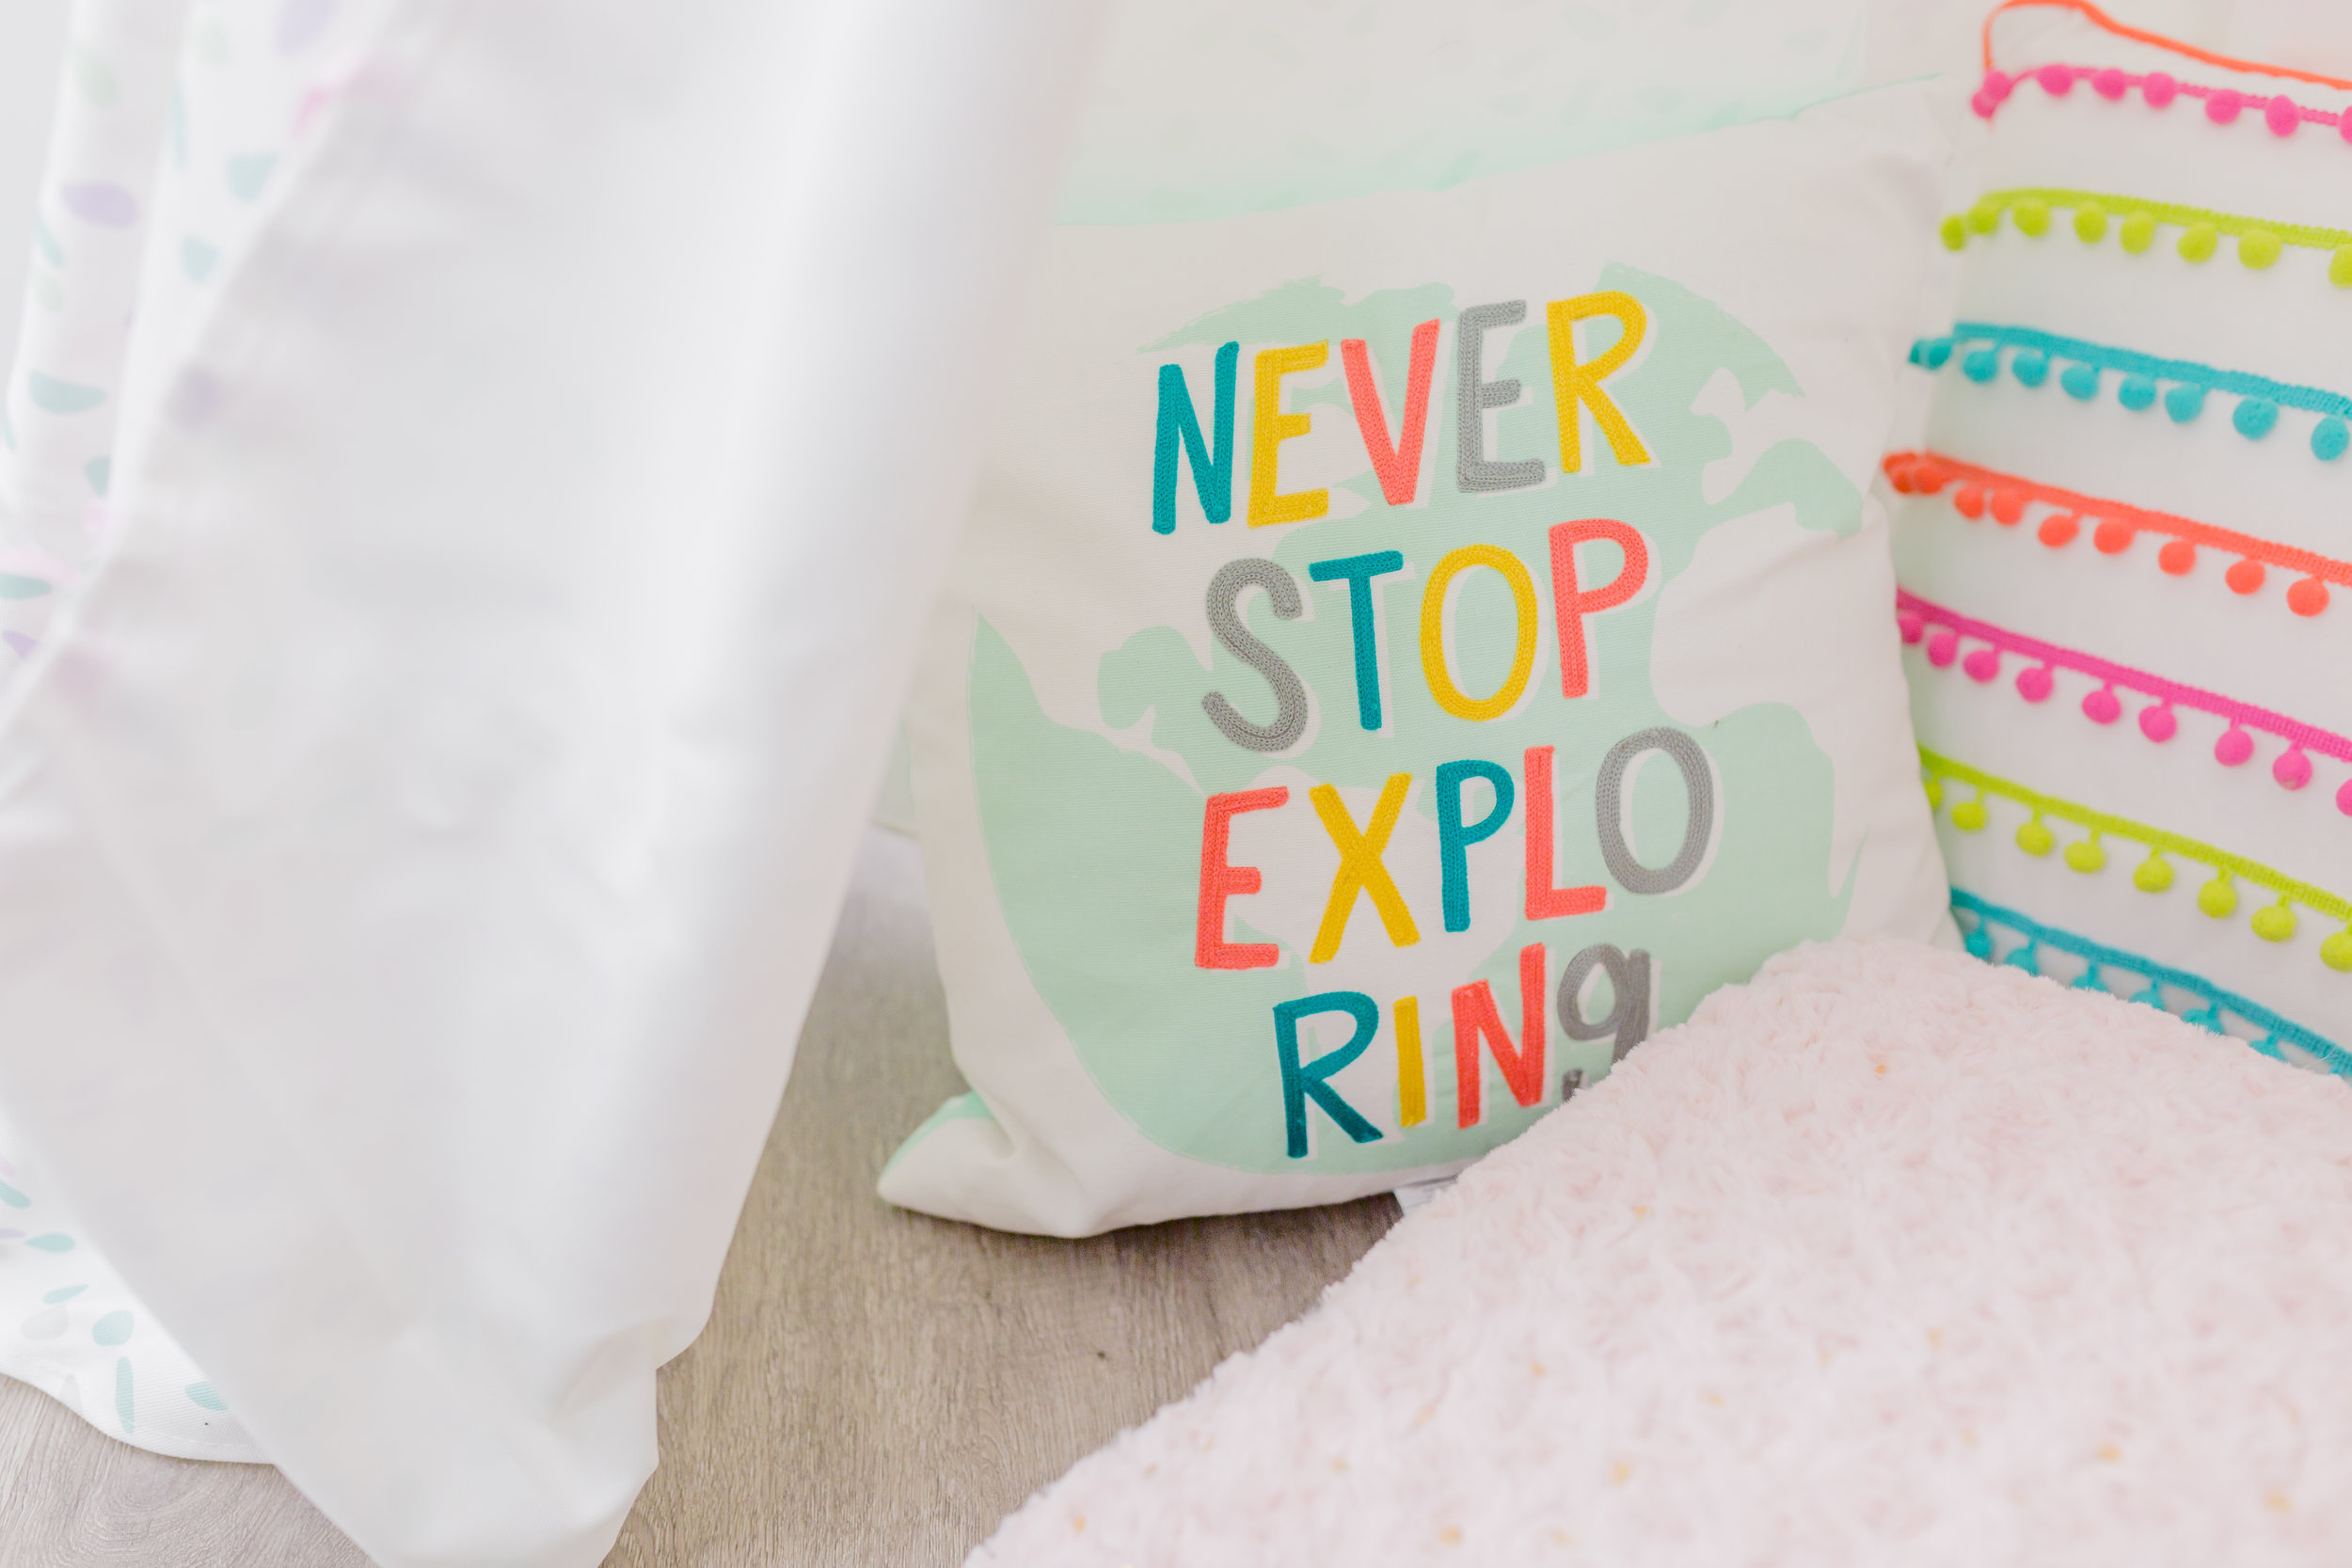 Fun pillows from Target and Marshalls